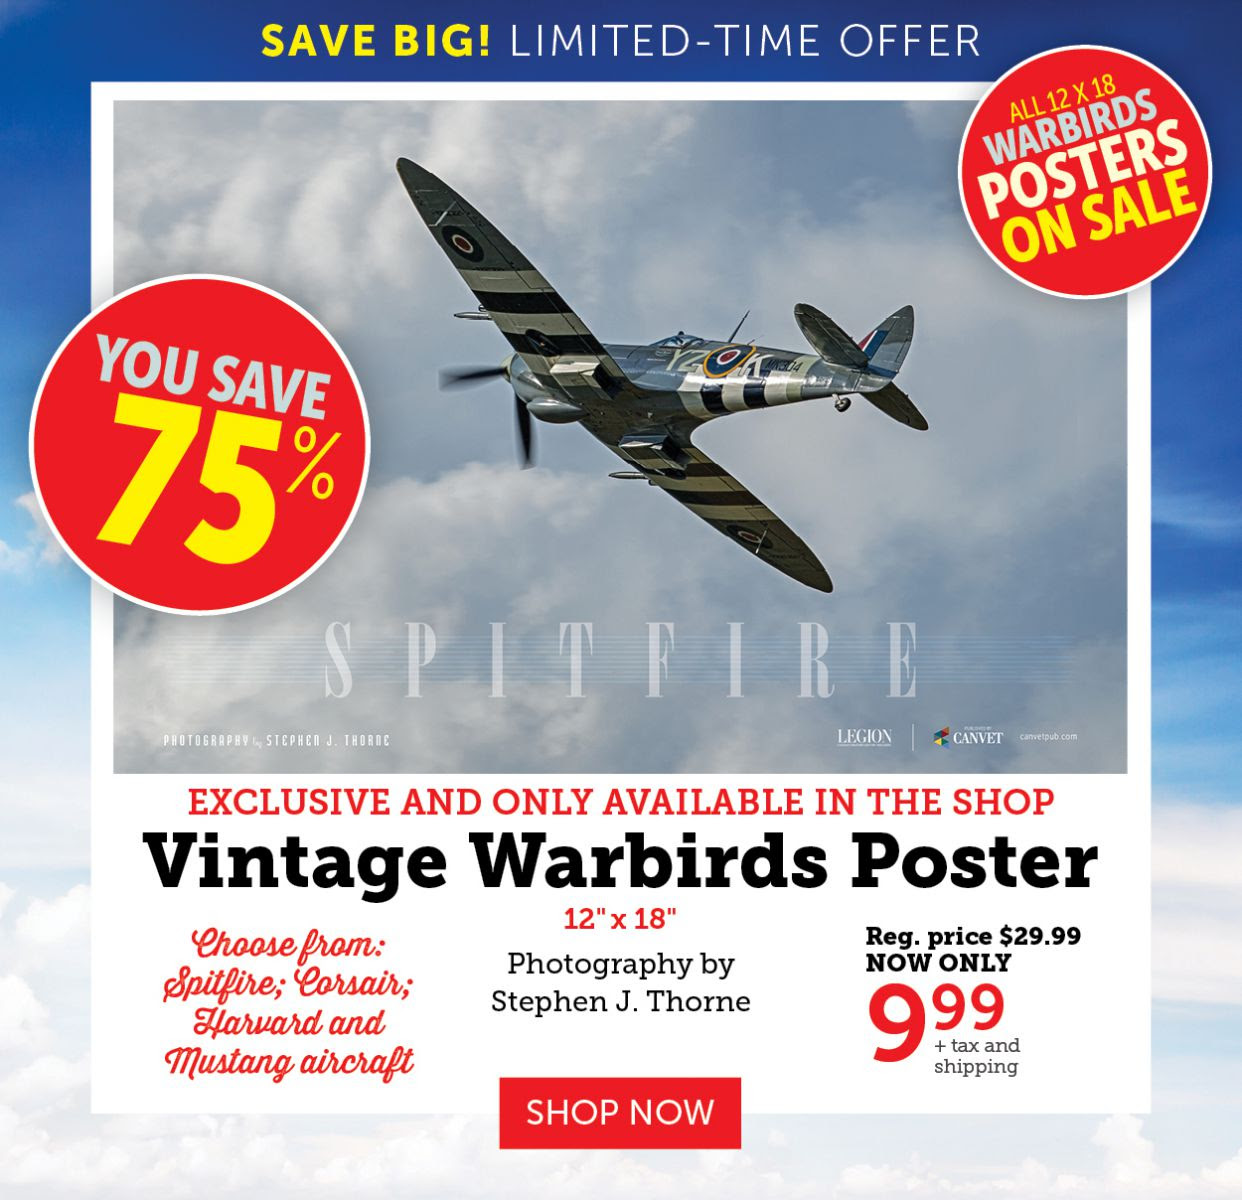 Vintage Warbirds Posters - 75% OFF!